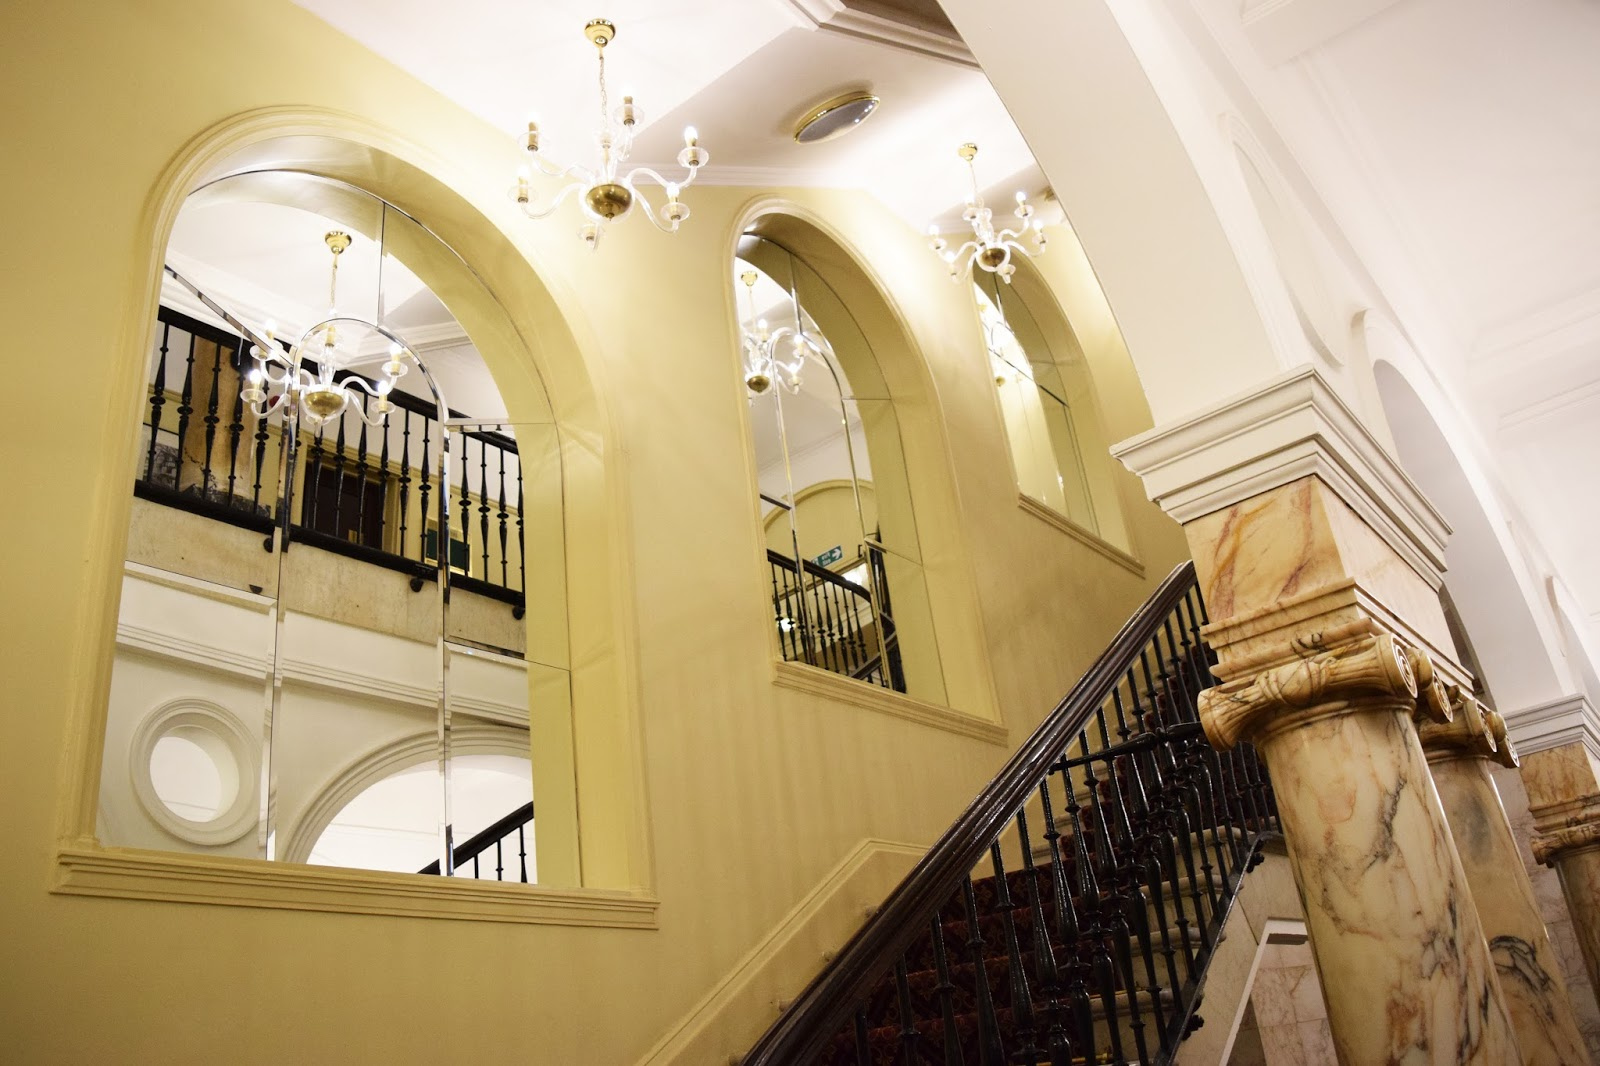 the grand staircase which runs throughout the hotel. Large mirrors can be seen in places of windows